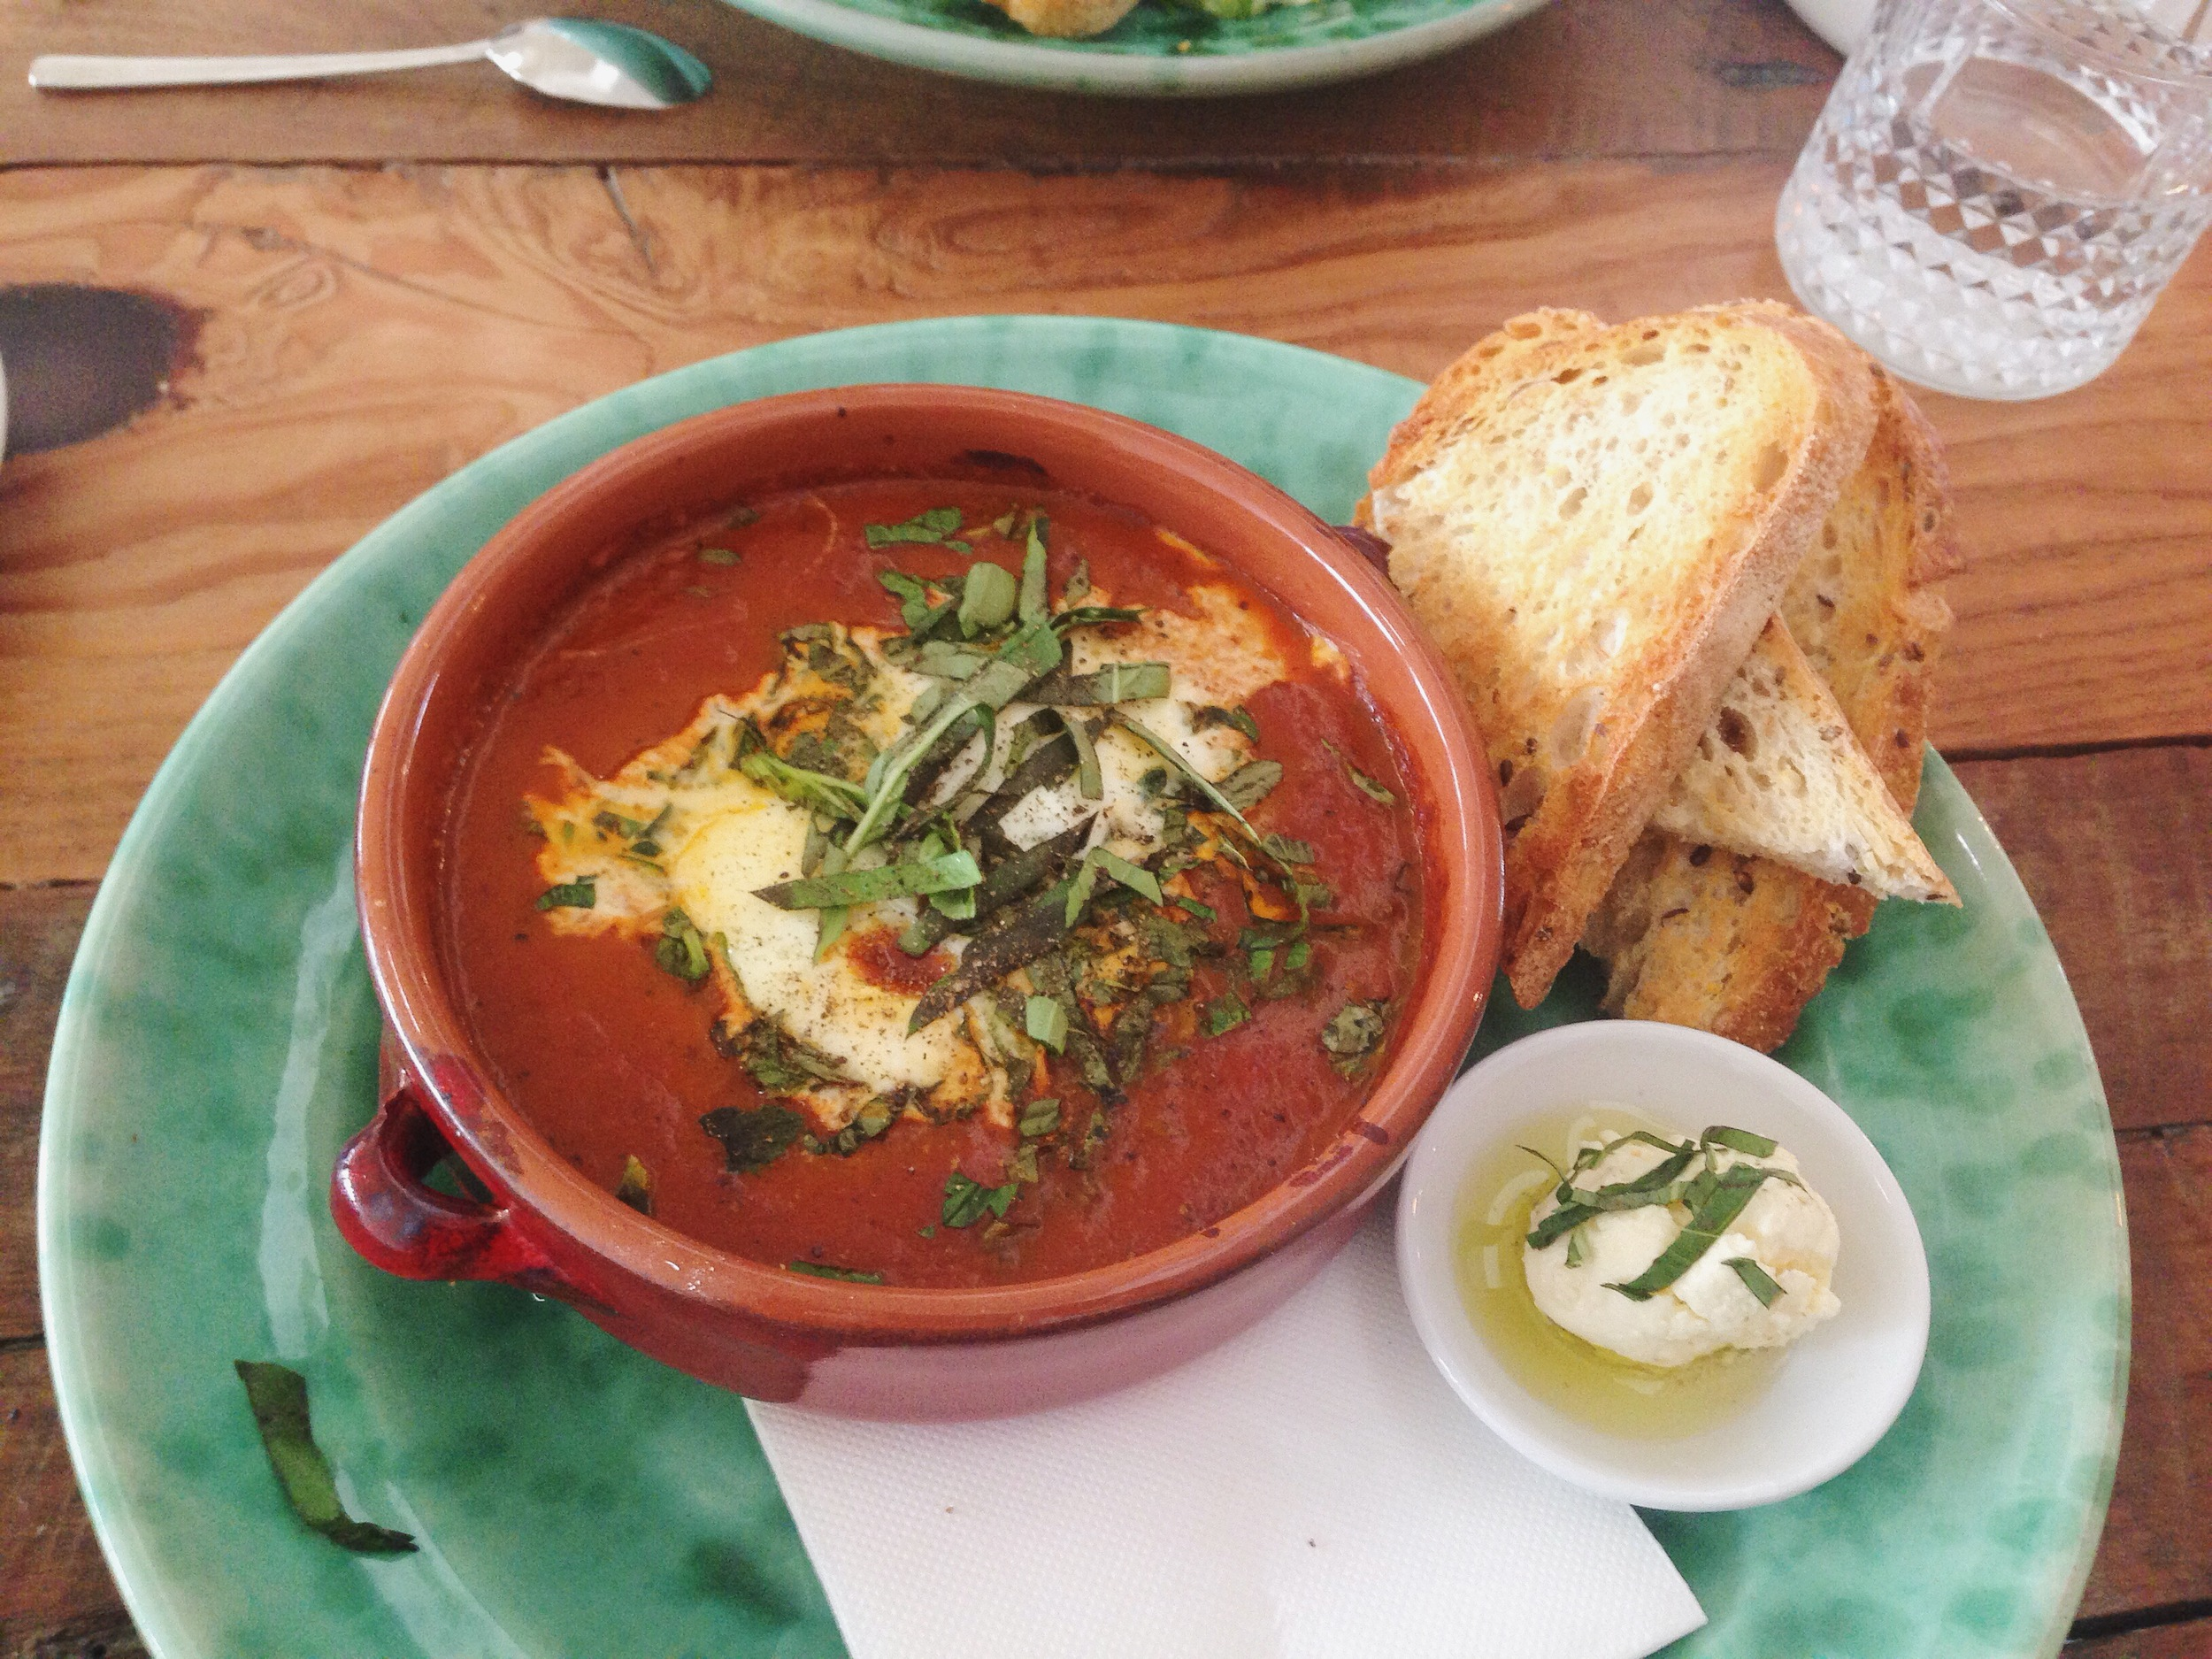 Baked Eggs with a surprise side of creamy feta